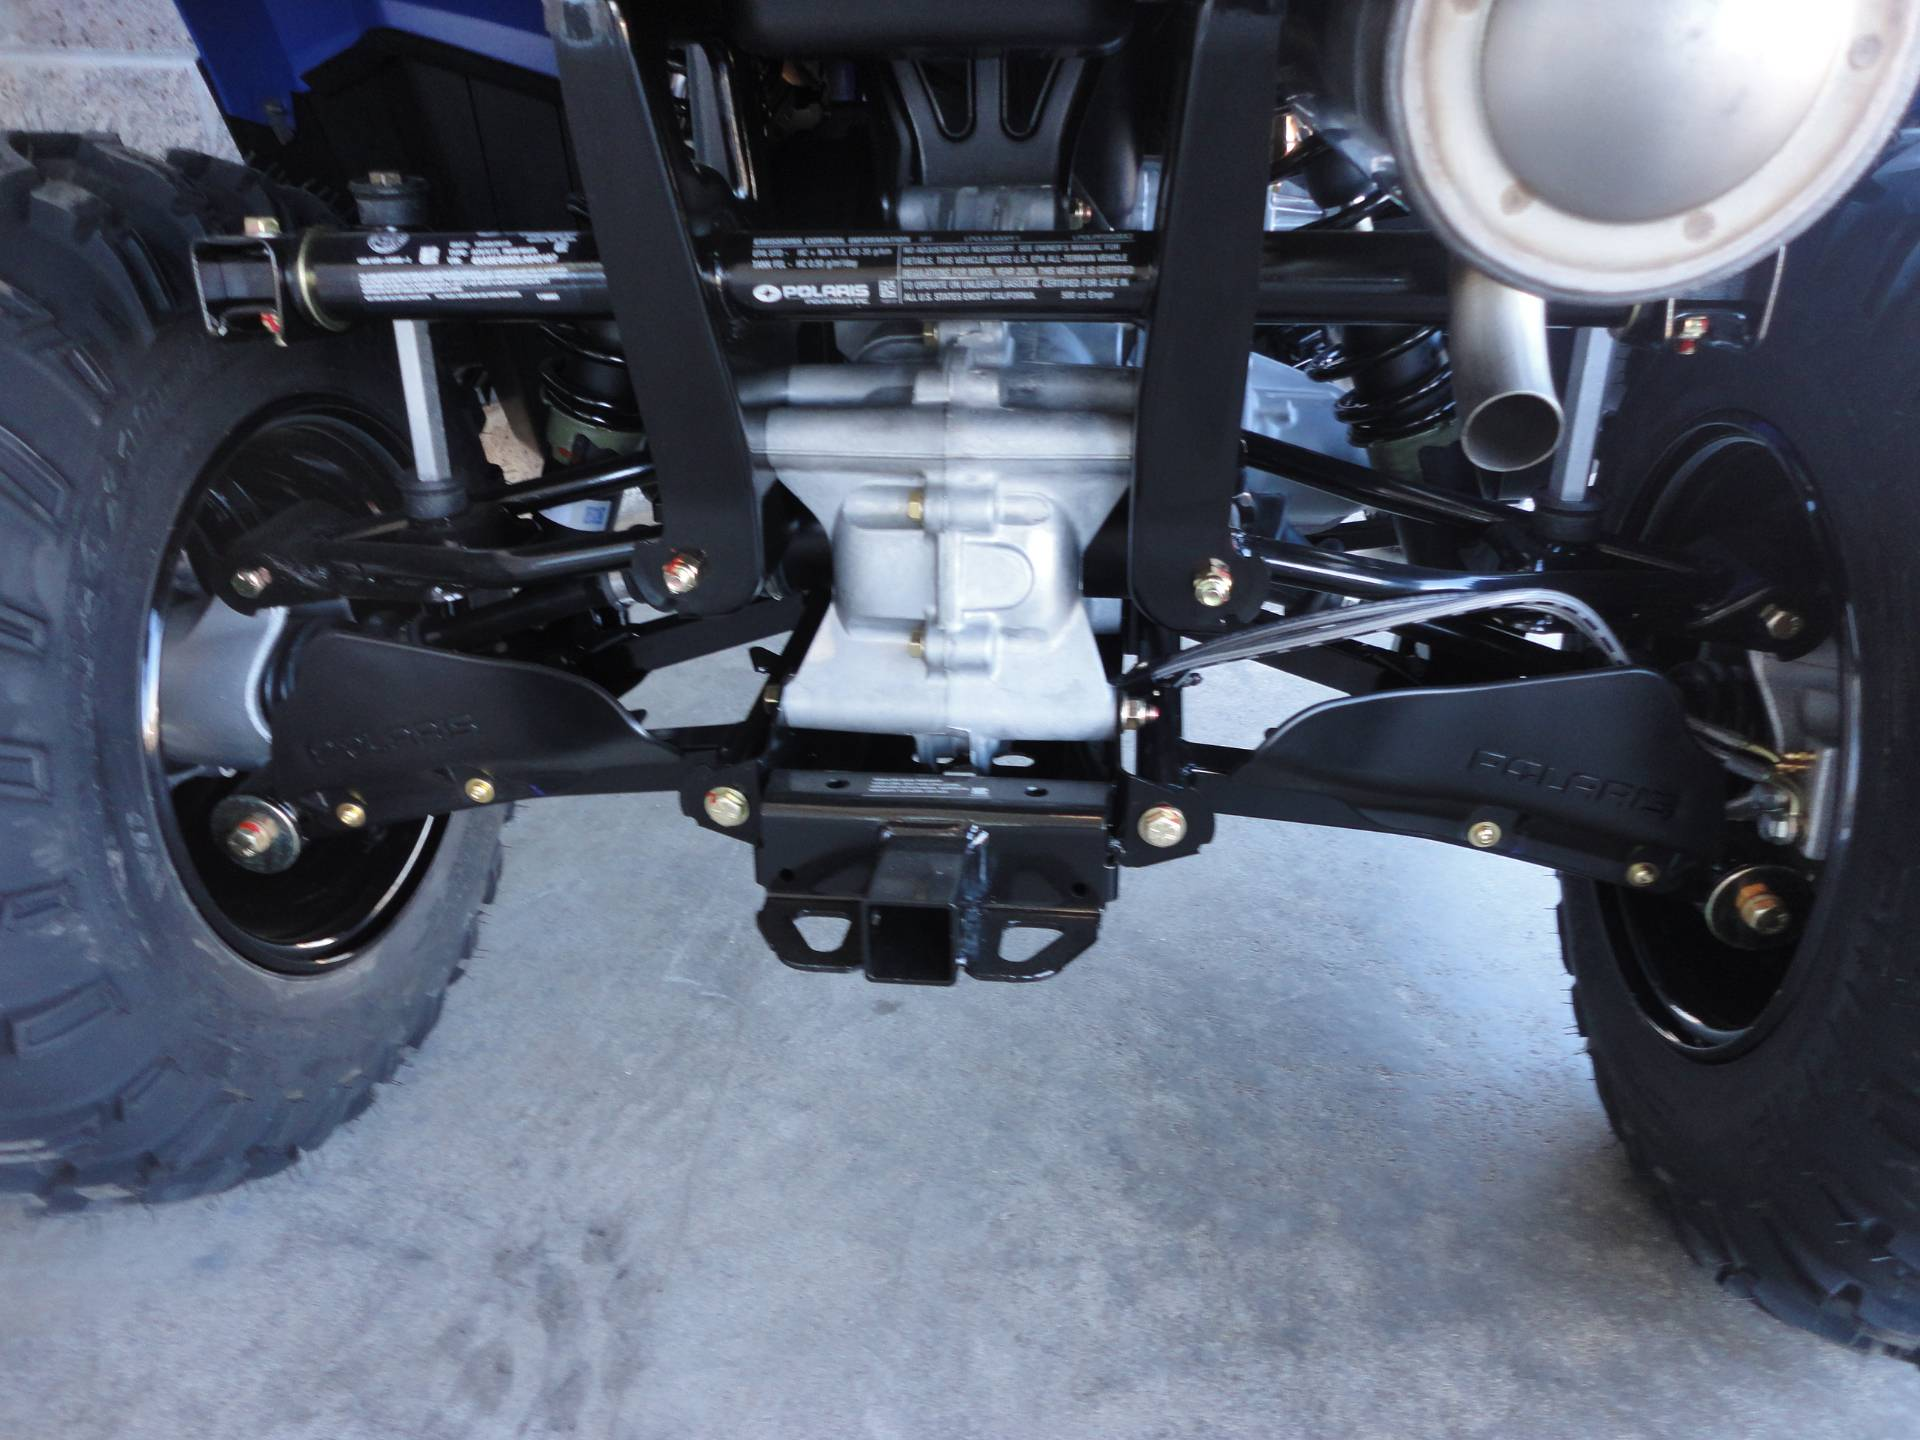 2020 Polaris Sportsman 450 H.O. Utility Package in Denver, Colorado - Photo 18